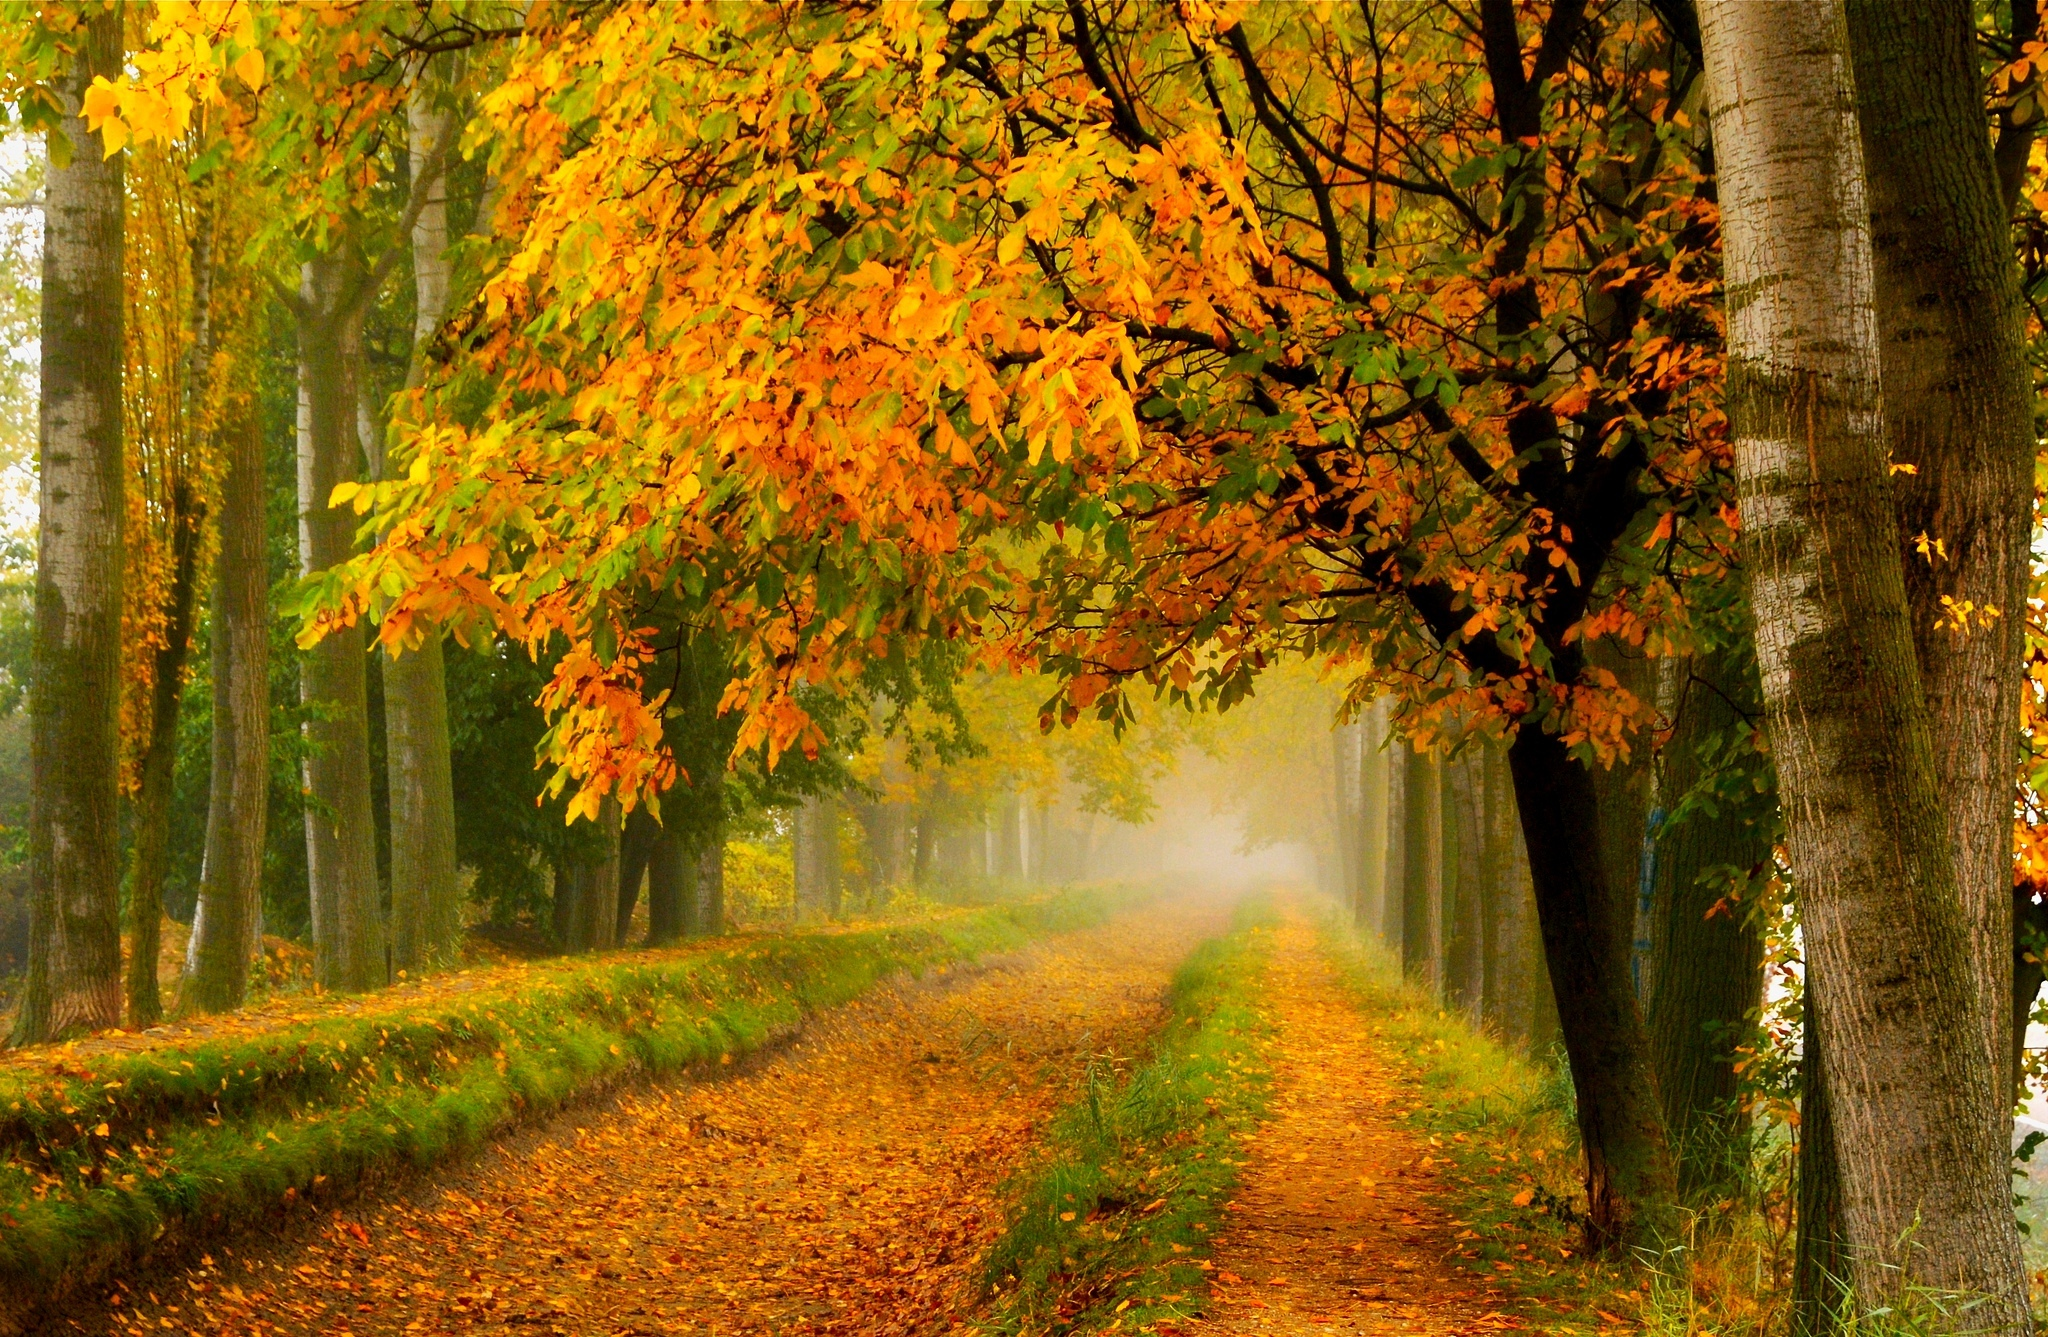 Wallpaper For Fall And Autumn Fall Colors Walk Leaves Autumn Nature Trees Road Forest